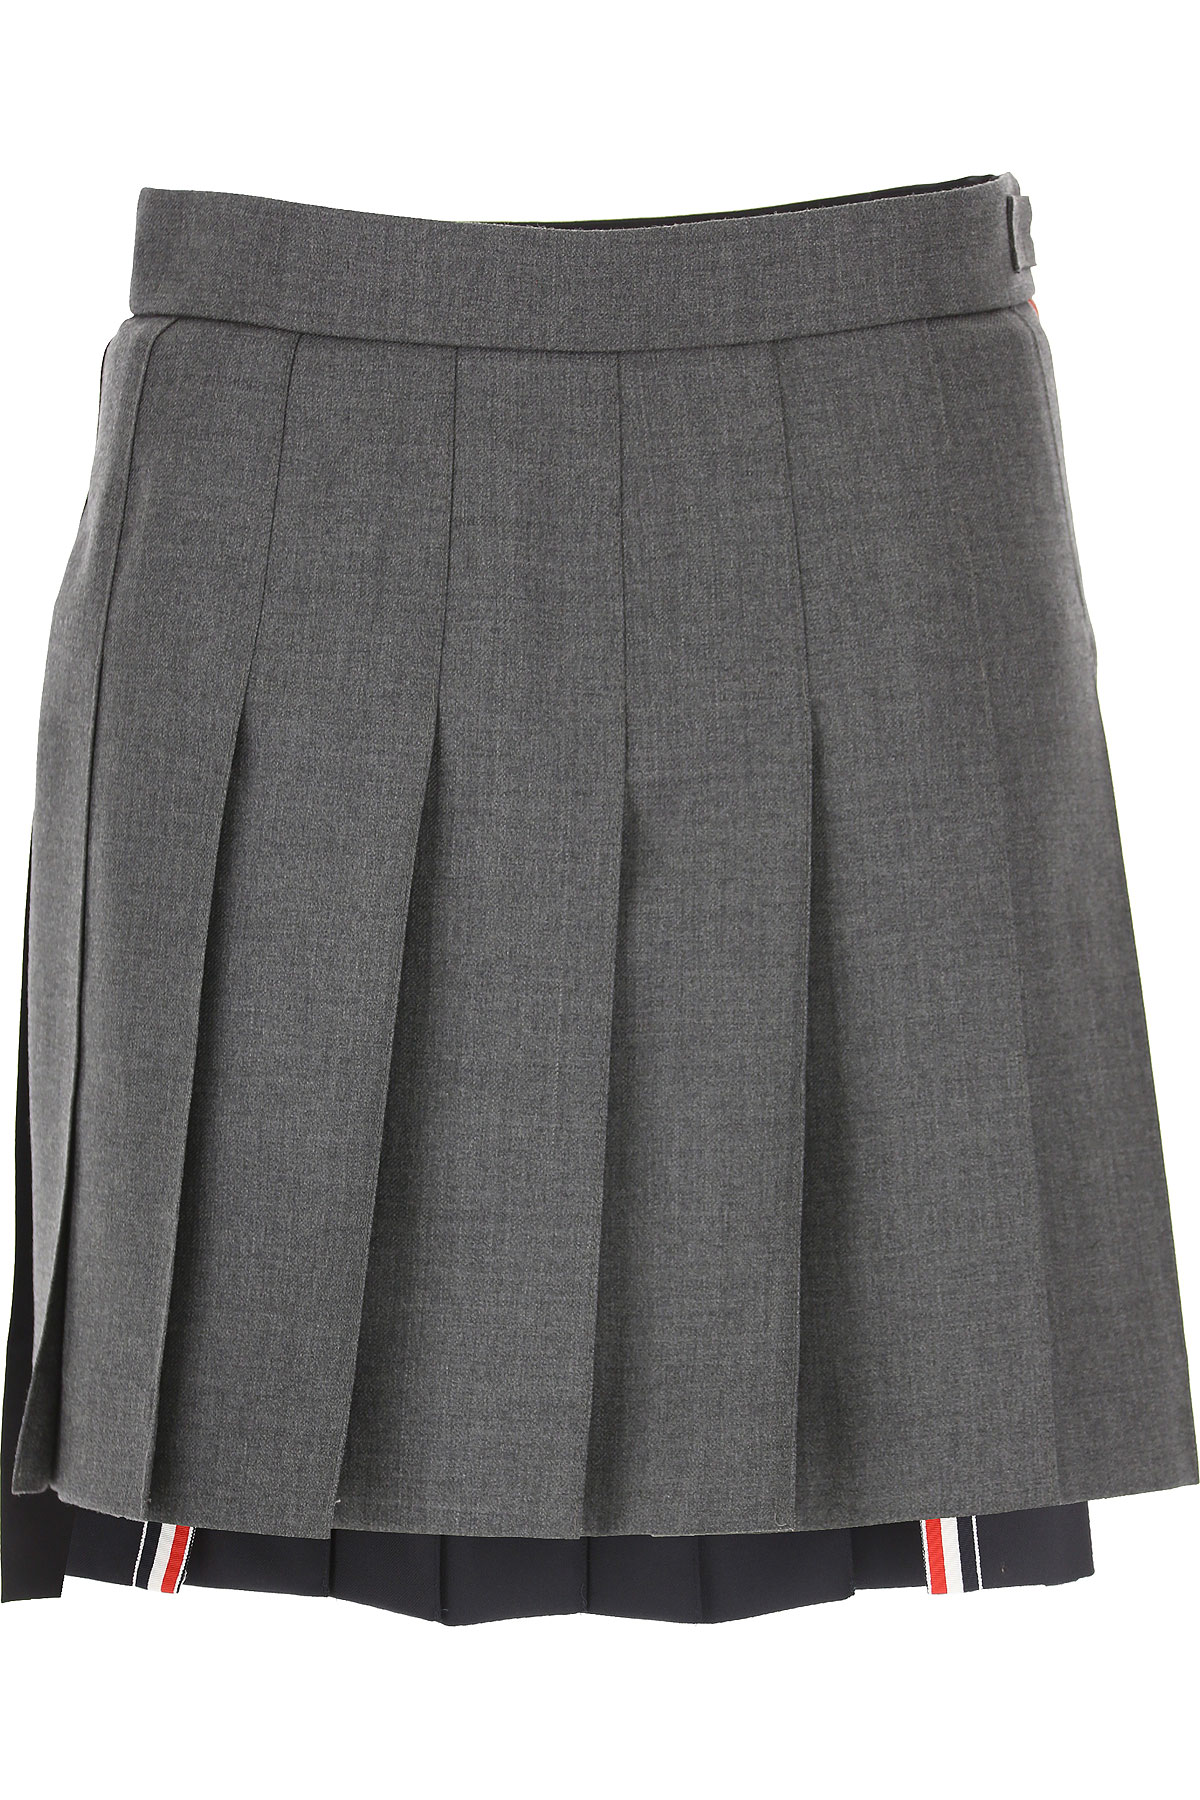 Image of THOM BROWNE Skirt for Women, Grey, Wool, 2017, 26 28